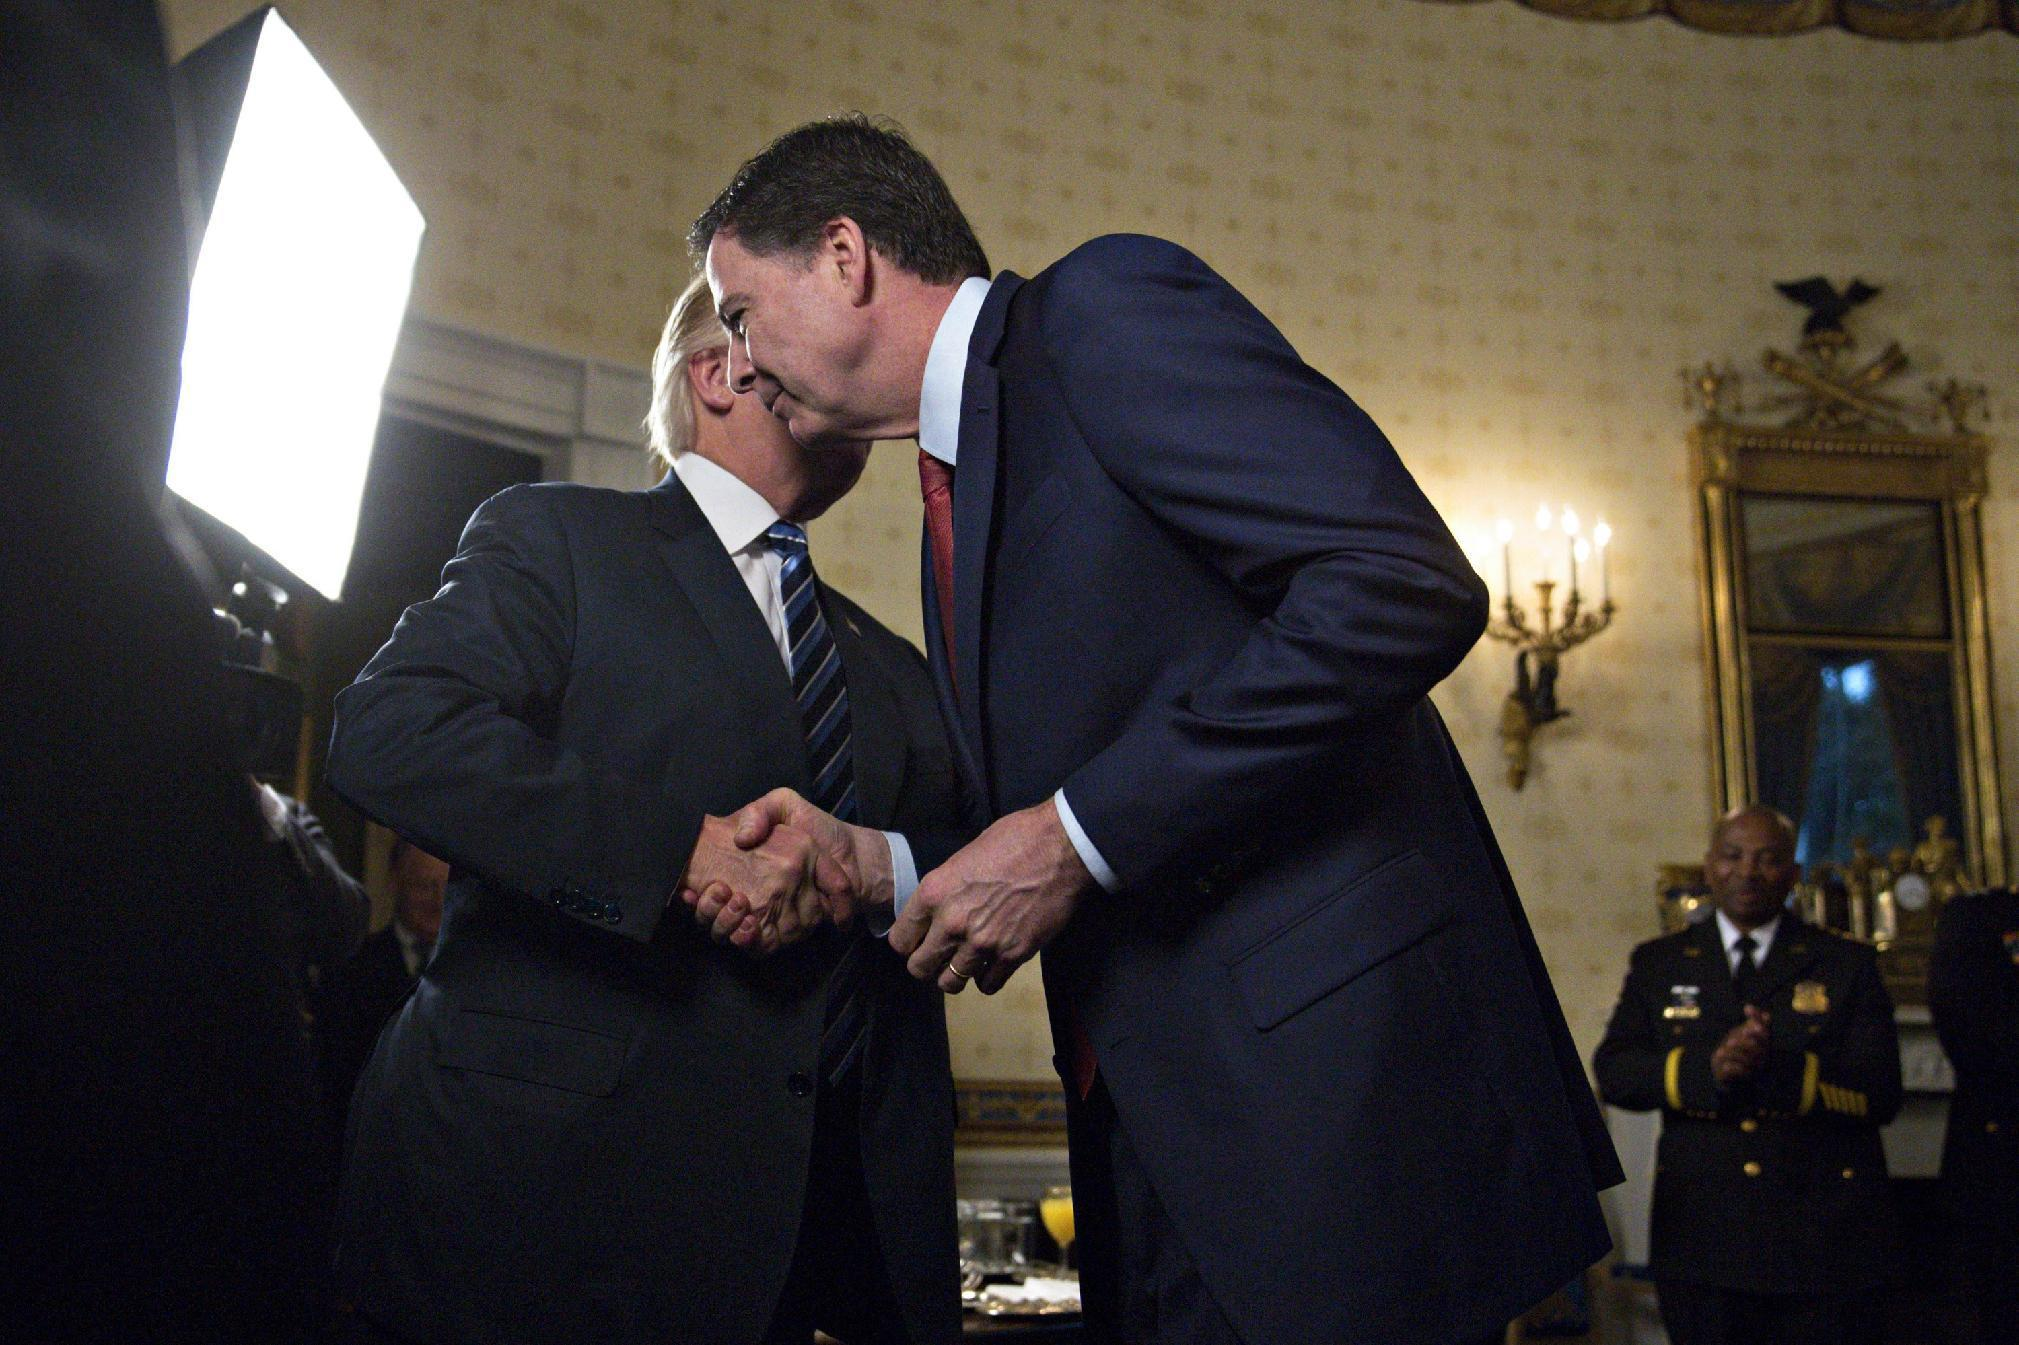 U.S. President Donald Trump (L) shakes hands with James Comey, director of the Federal Bureau of Investigation (FBI), during an Inaugural Law Enforcement Officers and First Responders Reception in the Blue Room of the White House on January 22, 2017 in Washington, DC. (Photo by Andrew Harrer-Pool/Getty Images)